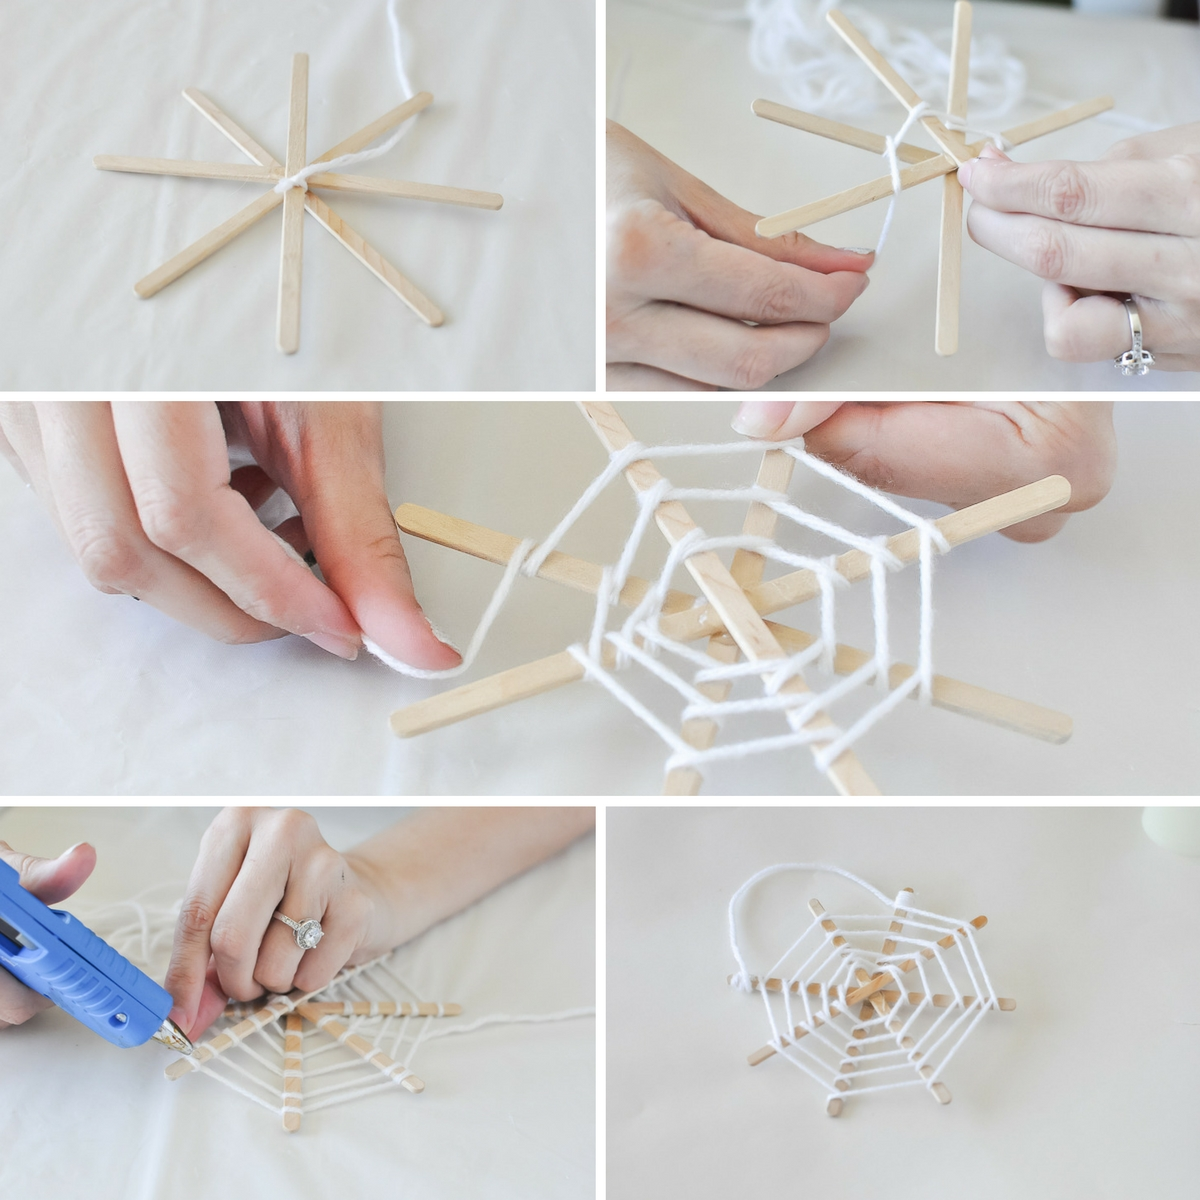 String-Five-Minute-Spiderweb Craft | Awesome with Sprinkles